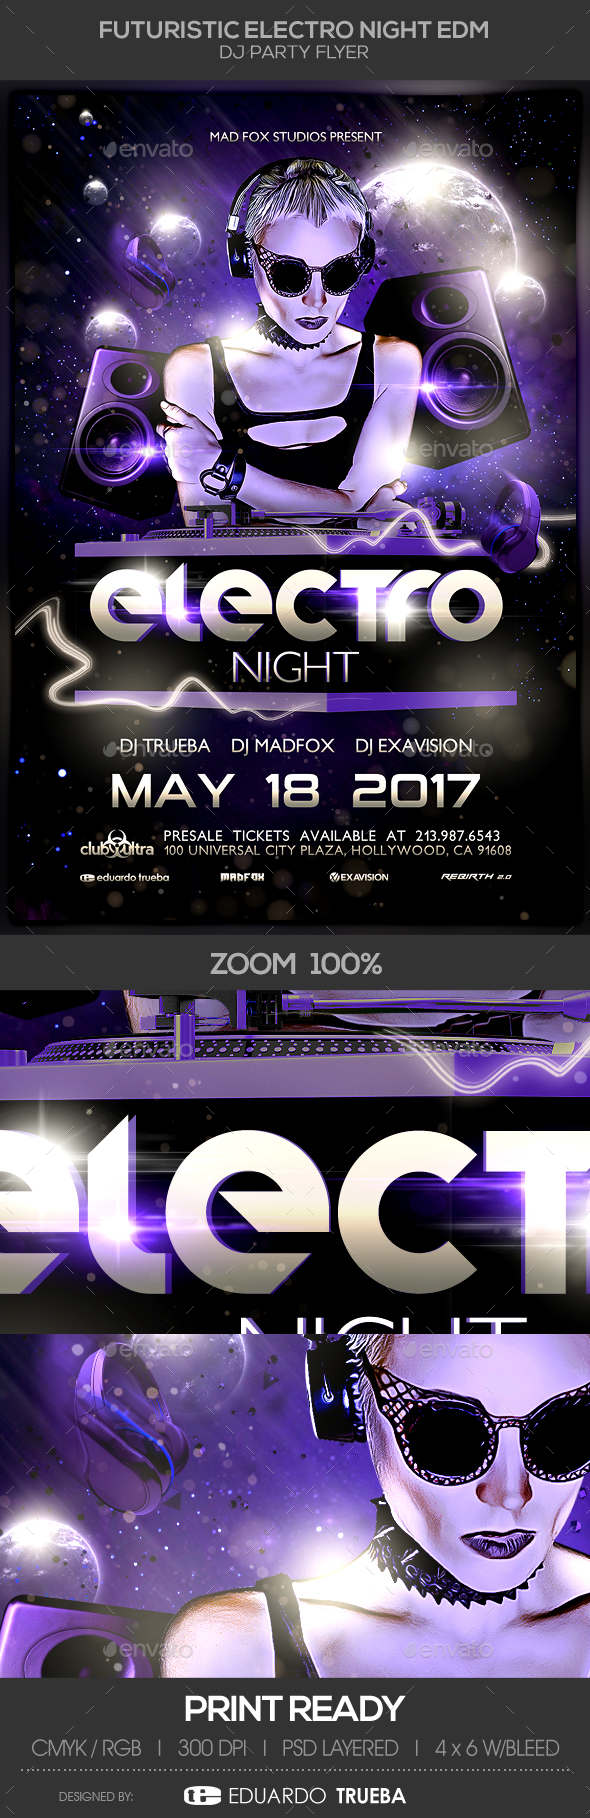 Futuristic Electro Night EDM Dj Party Flyer - Clubs & Parties Events